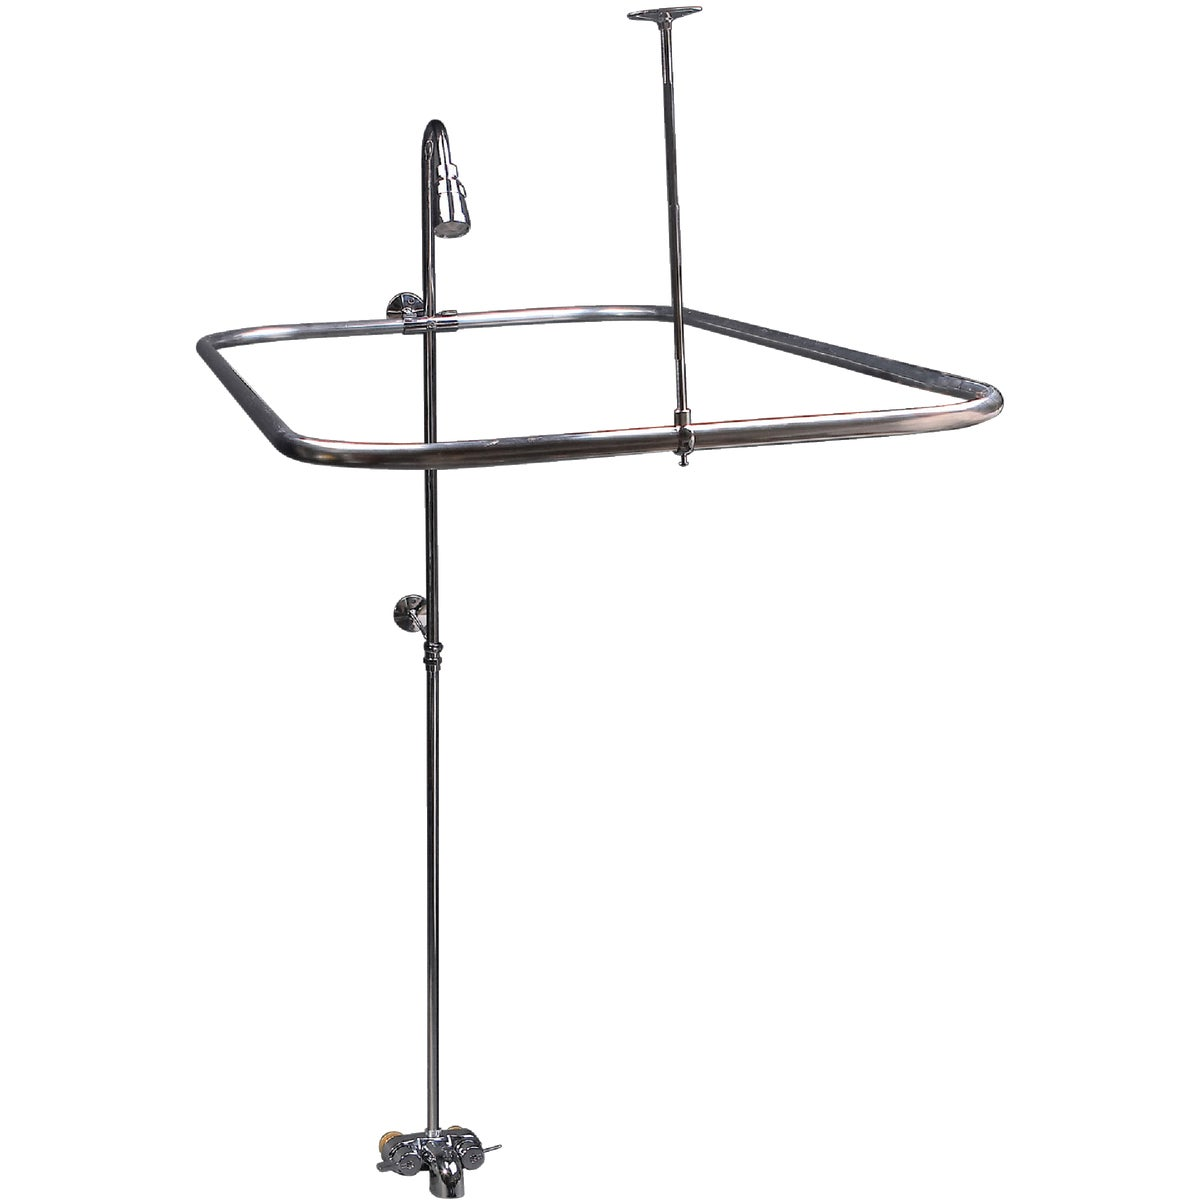 Alsons Corp. ADD-ON-SHOWER W/ROD PS2745